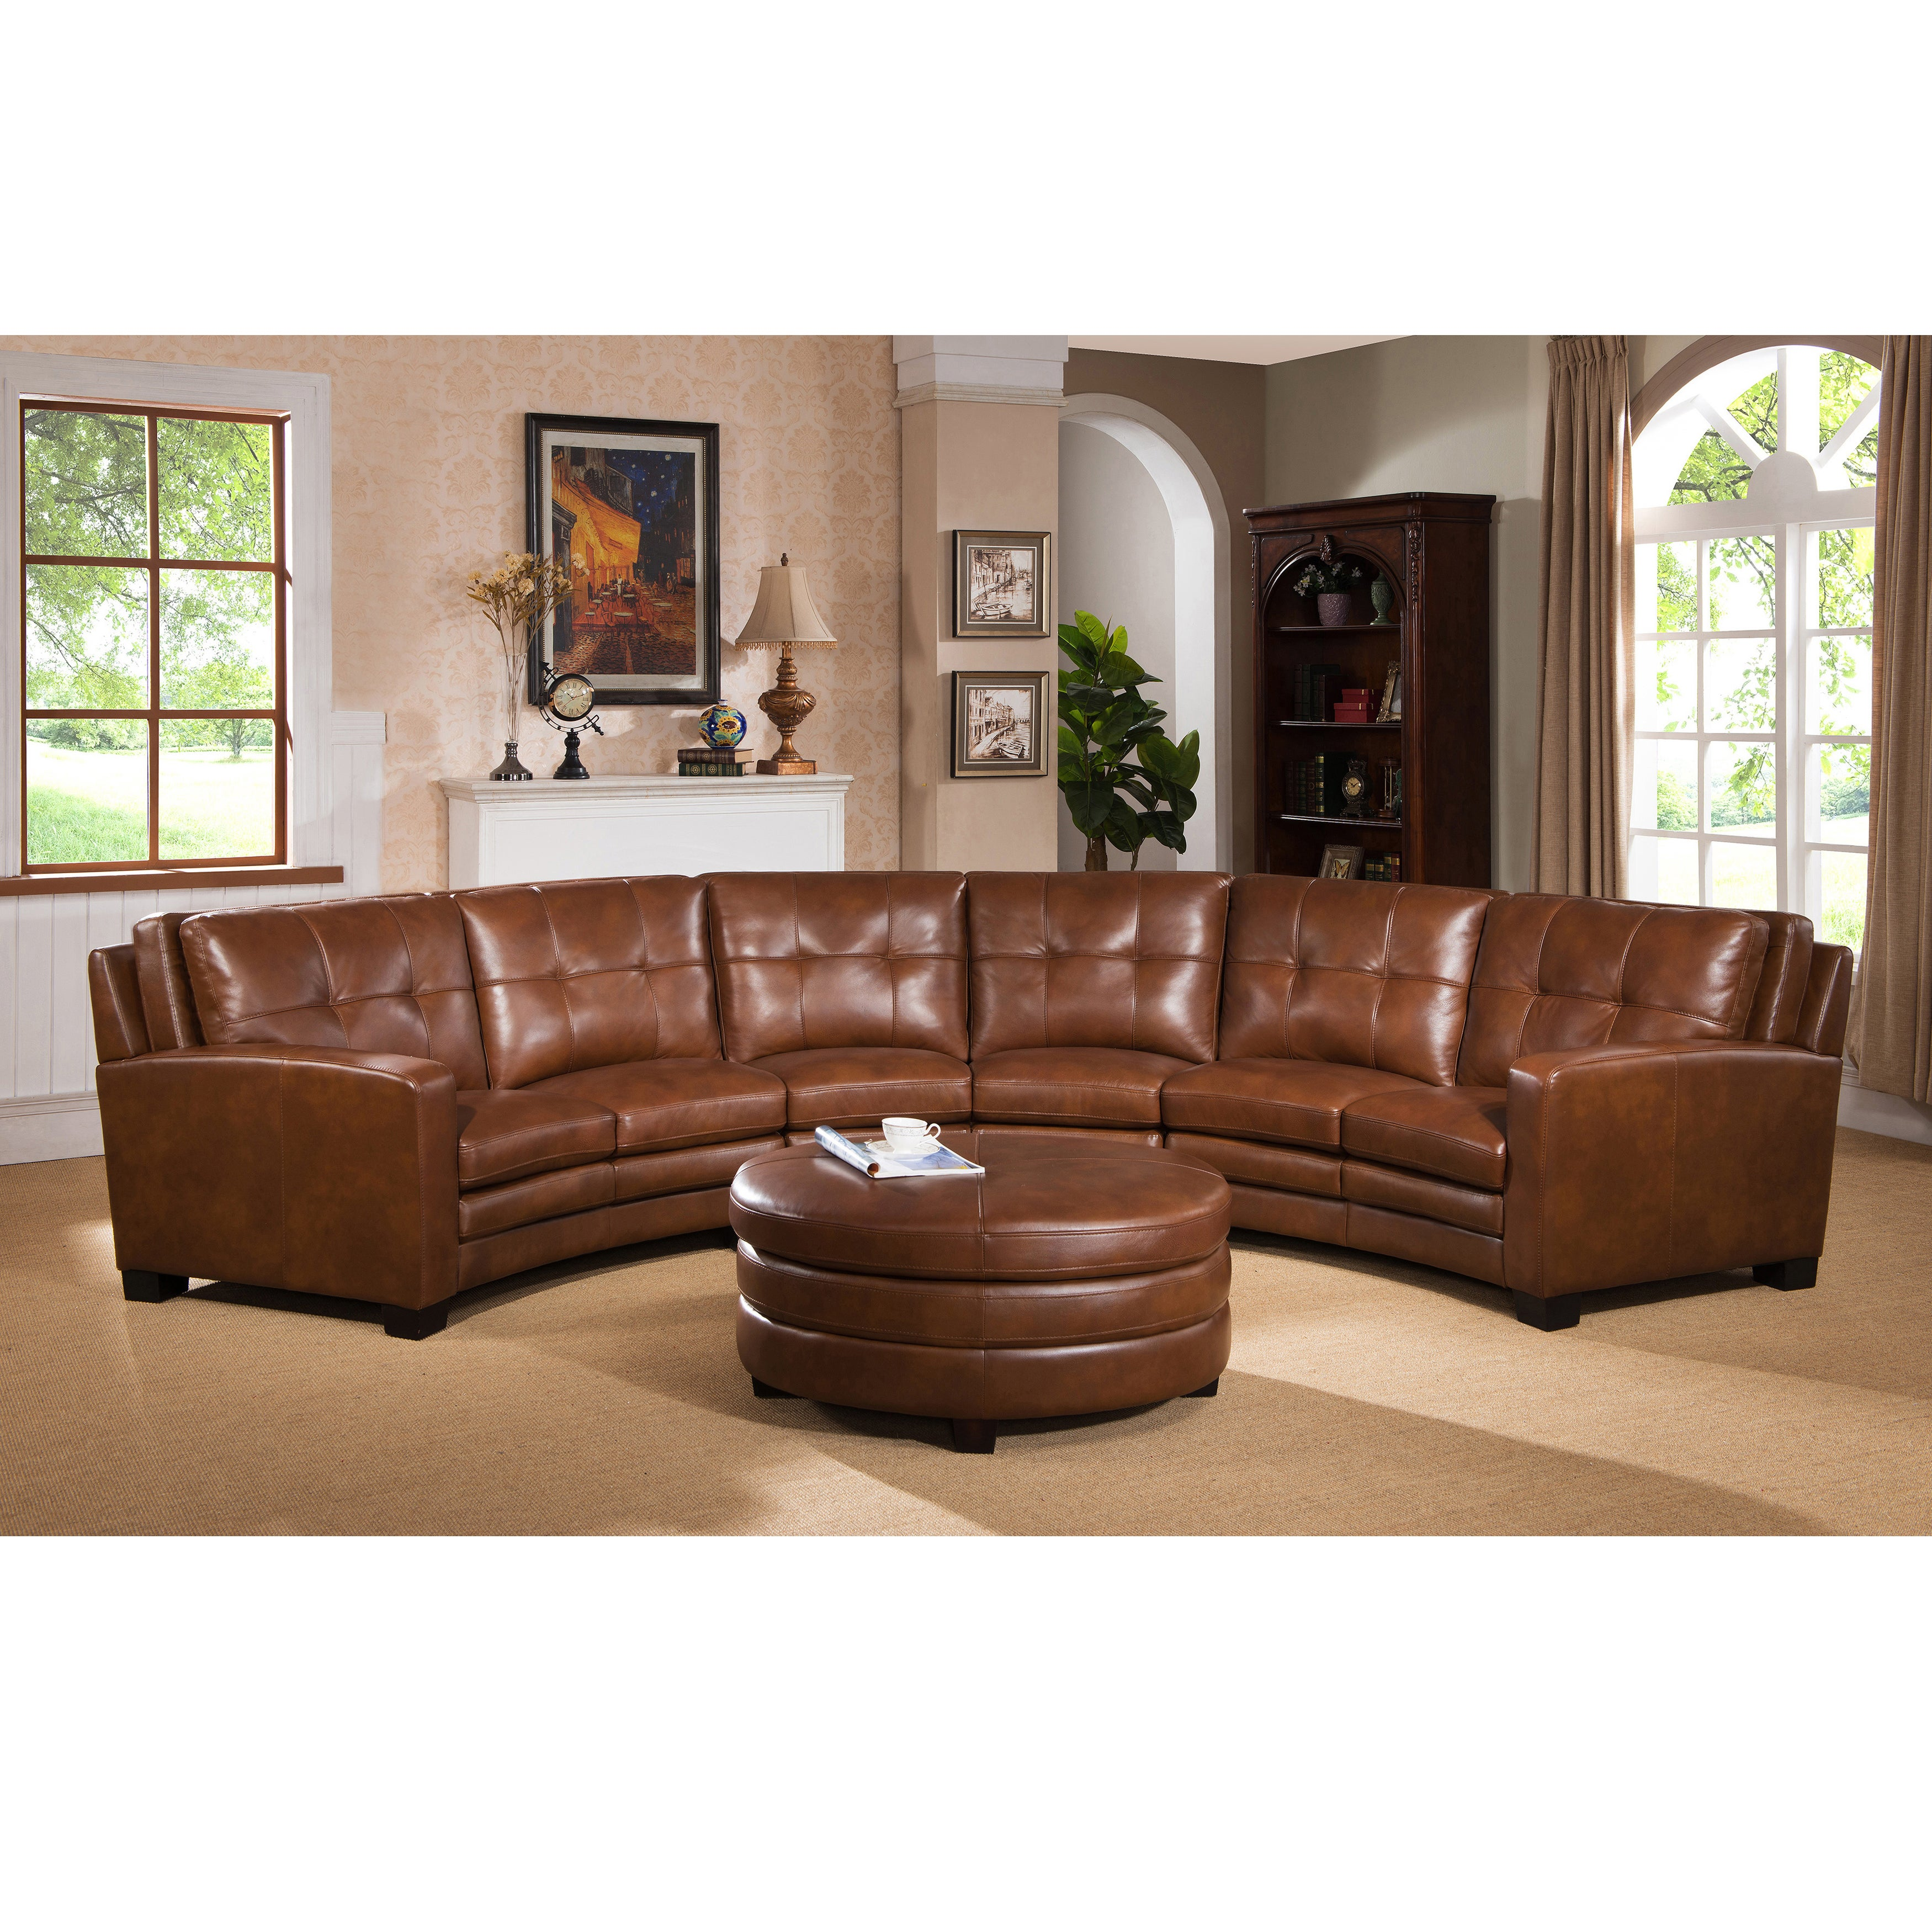 Meadows Brown Curved Top Grain Leather Sectional Sofa and...